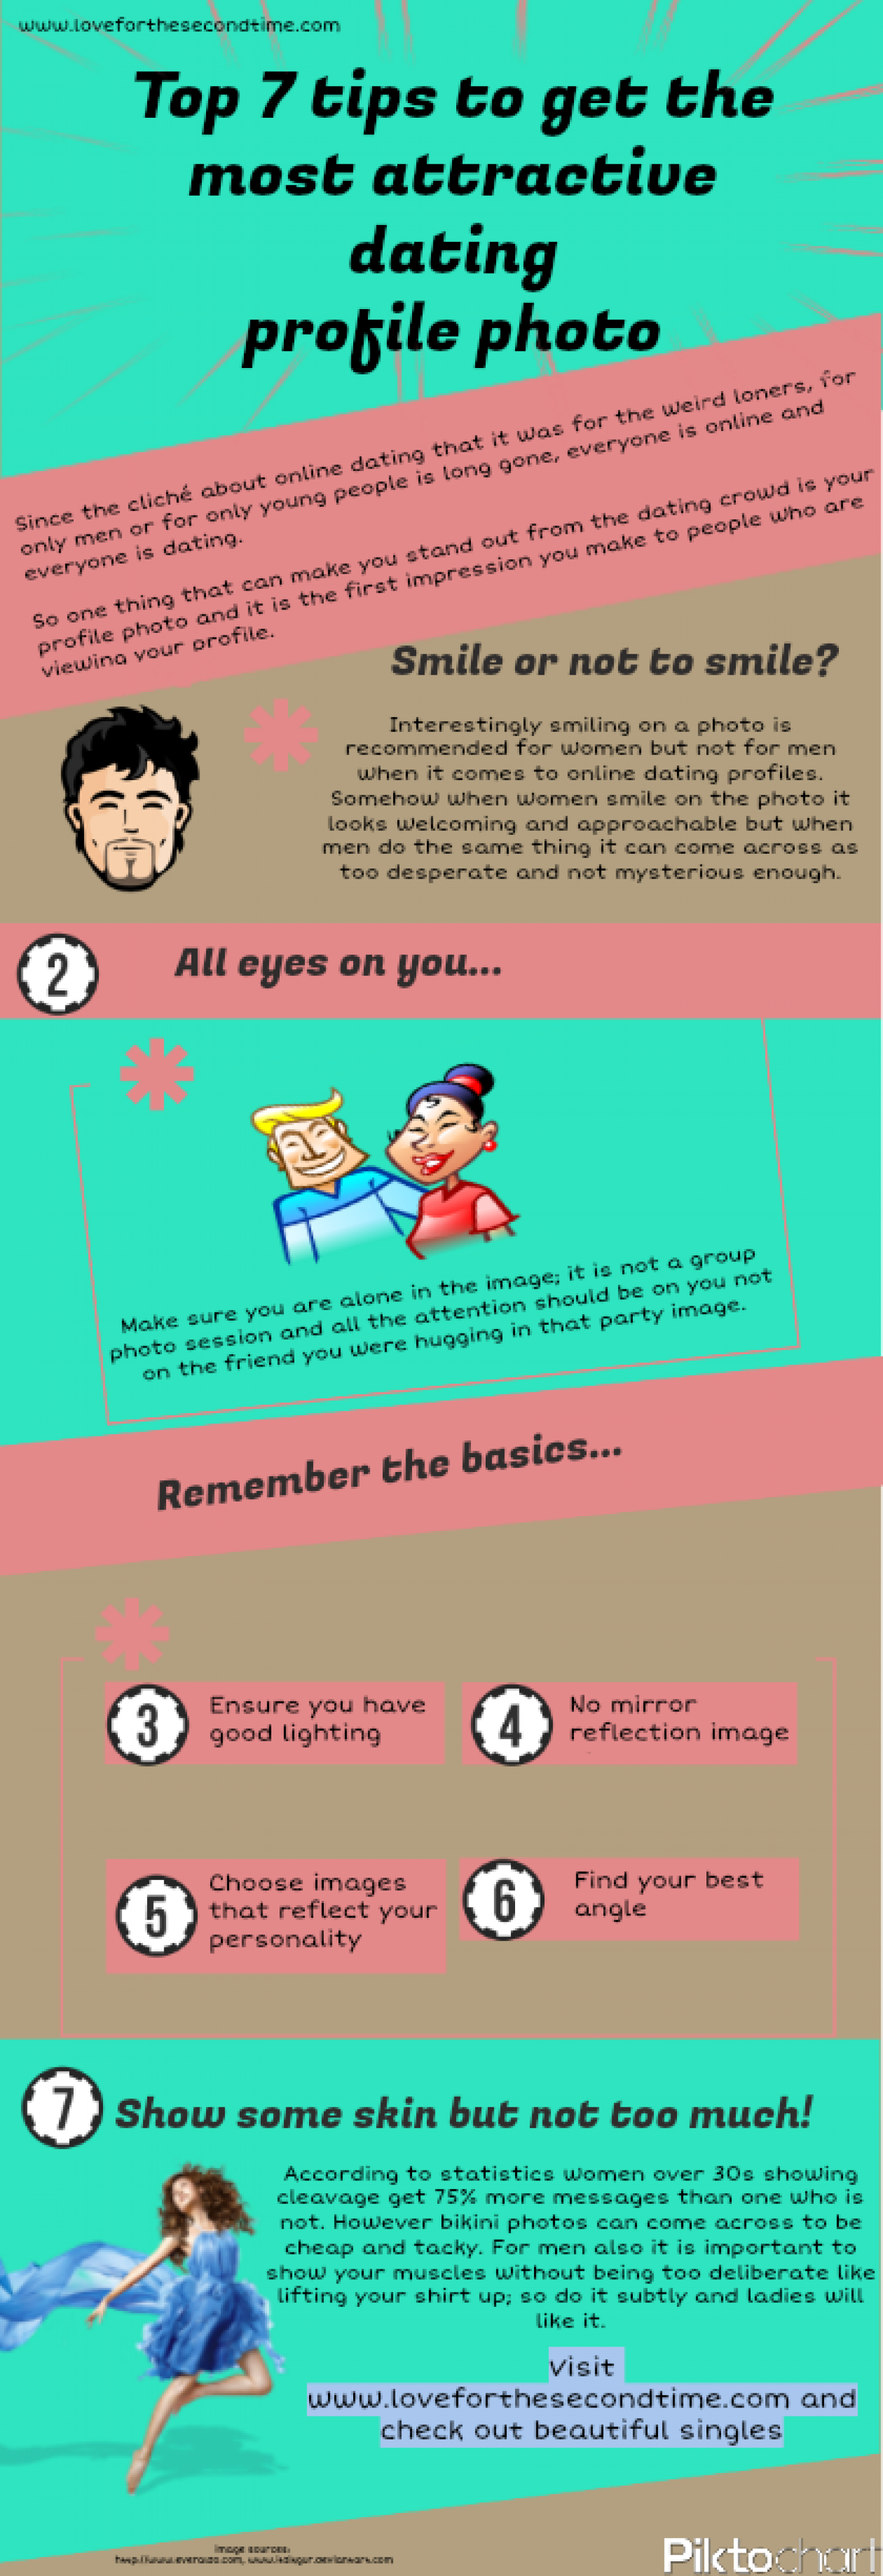 Top tips to get the most attractive dating profile photo Infographic